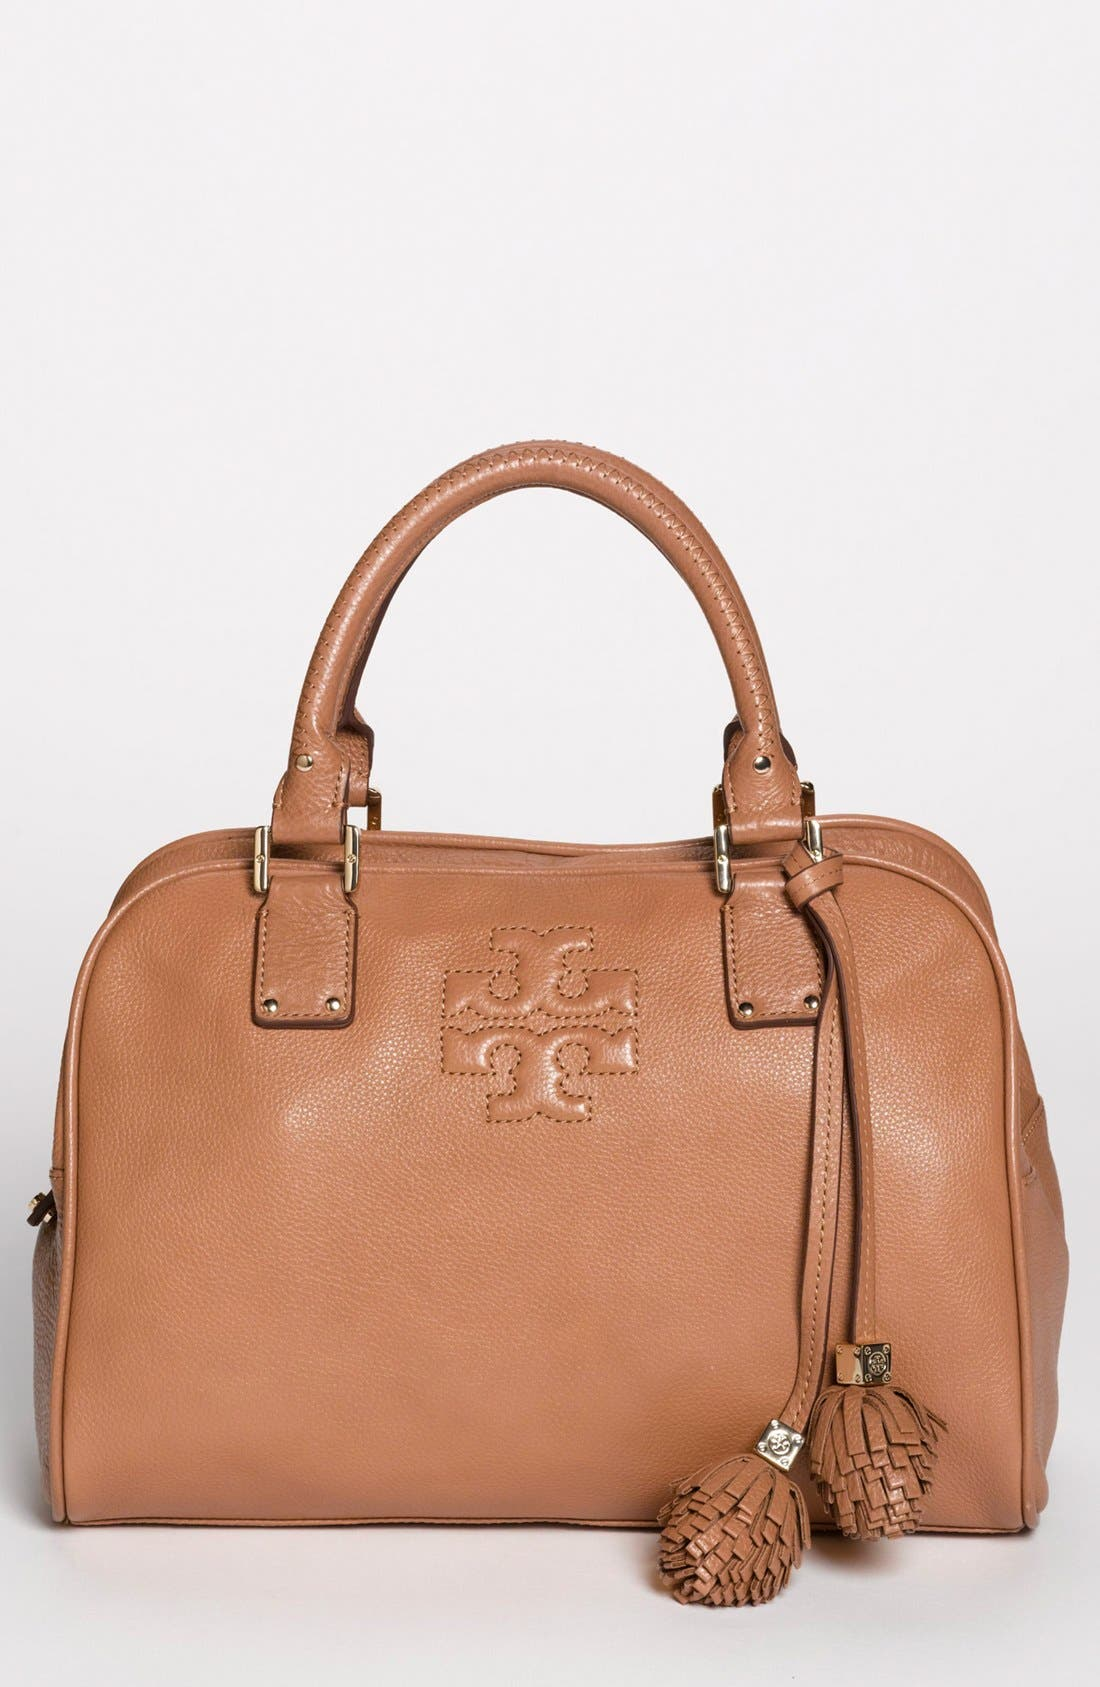 Main Image - Tory Burch 'Thea' Leather Satchel